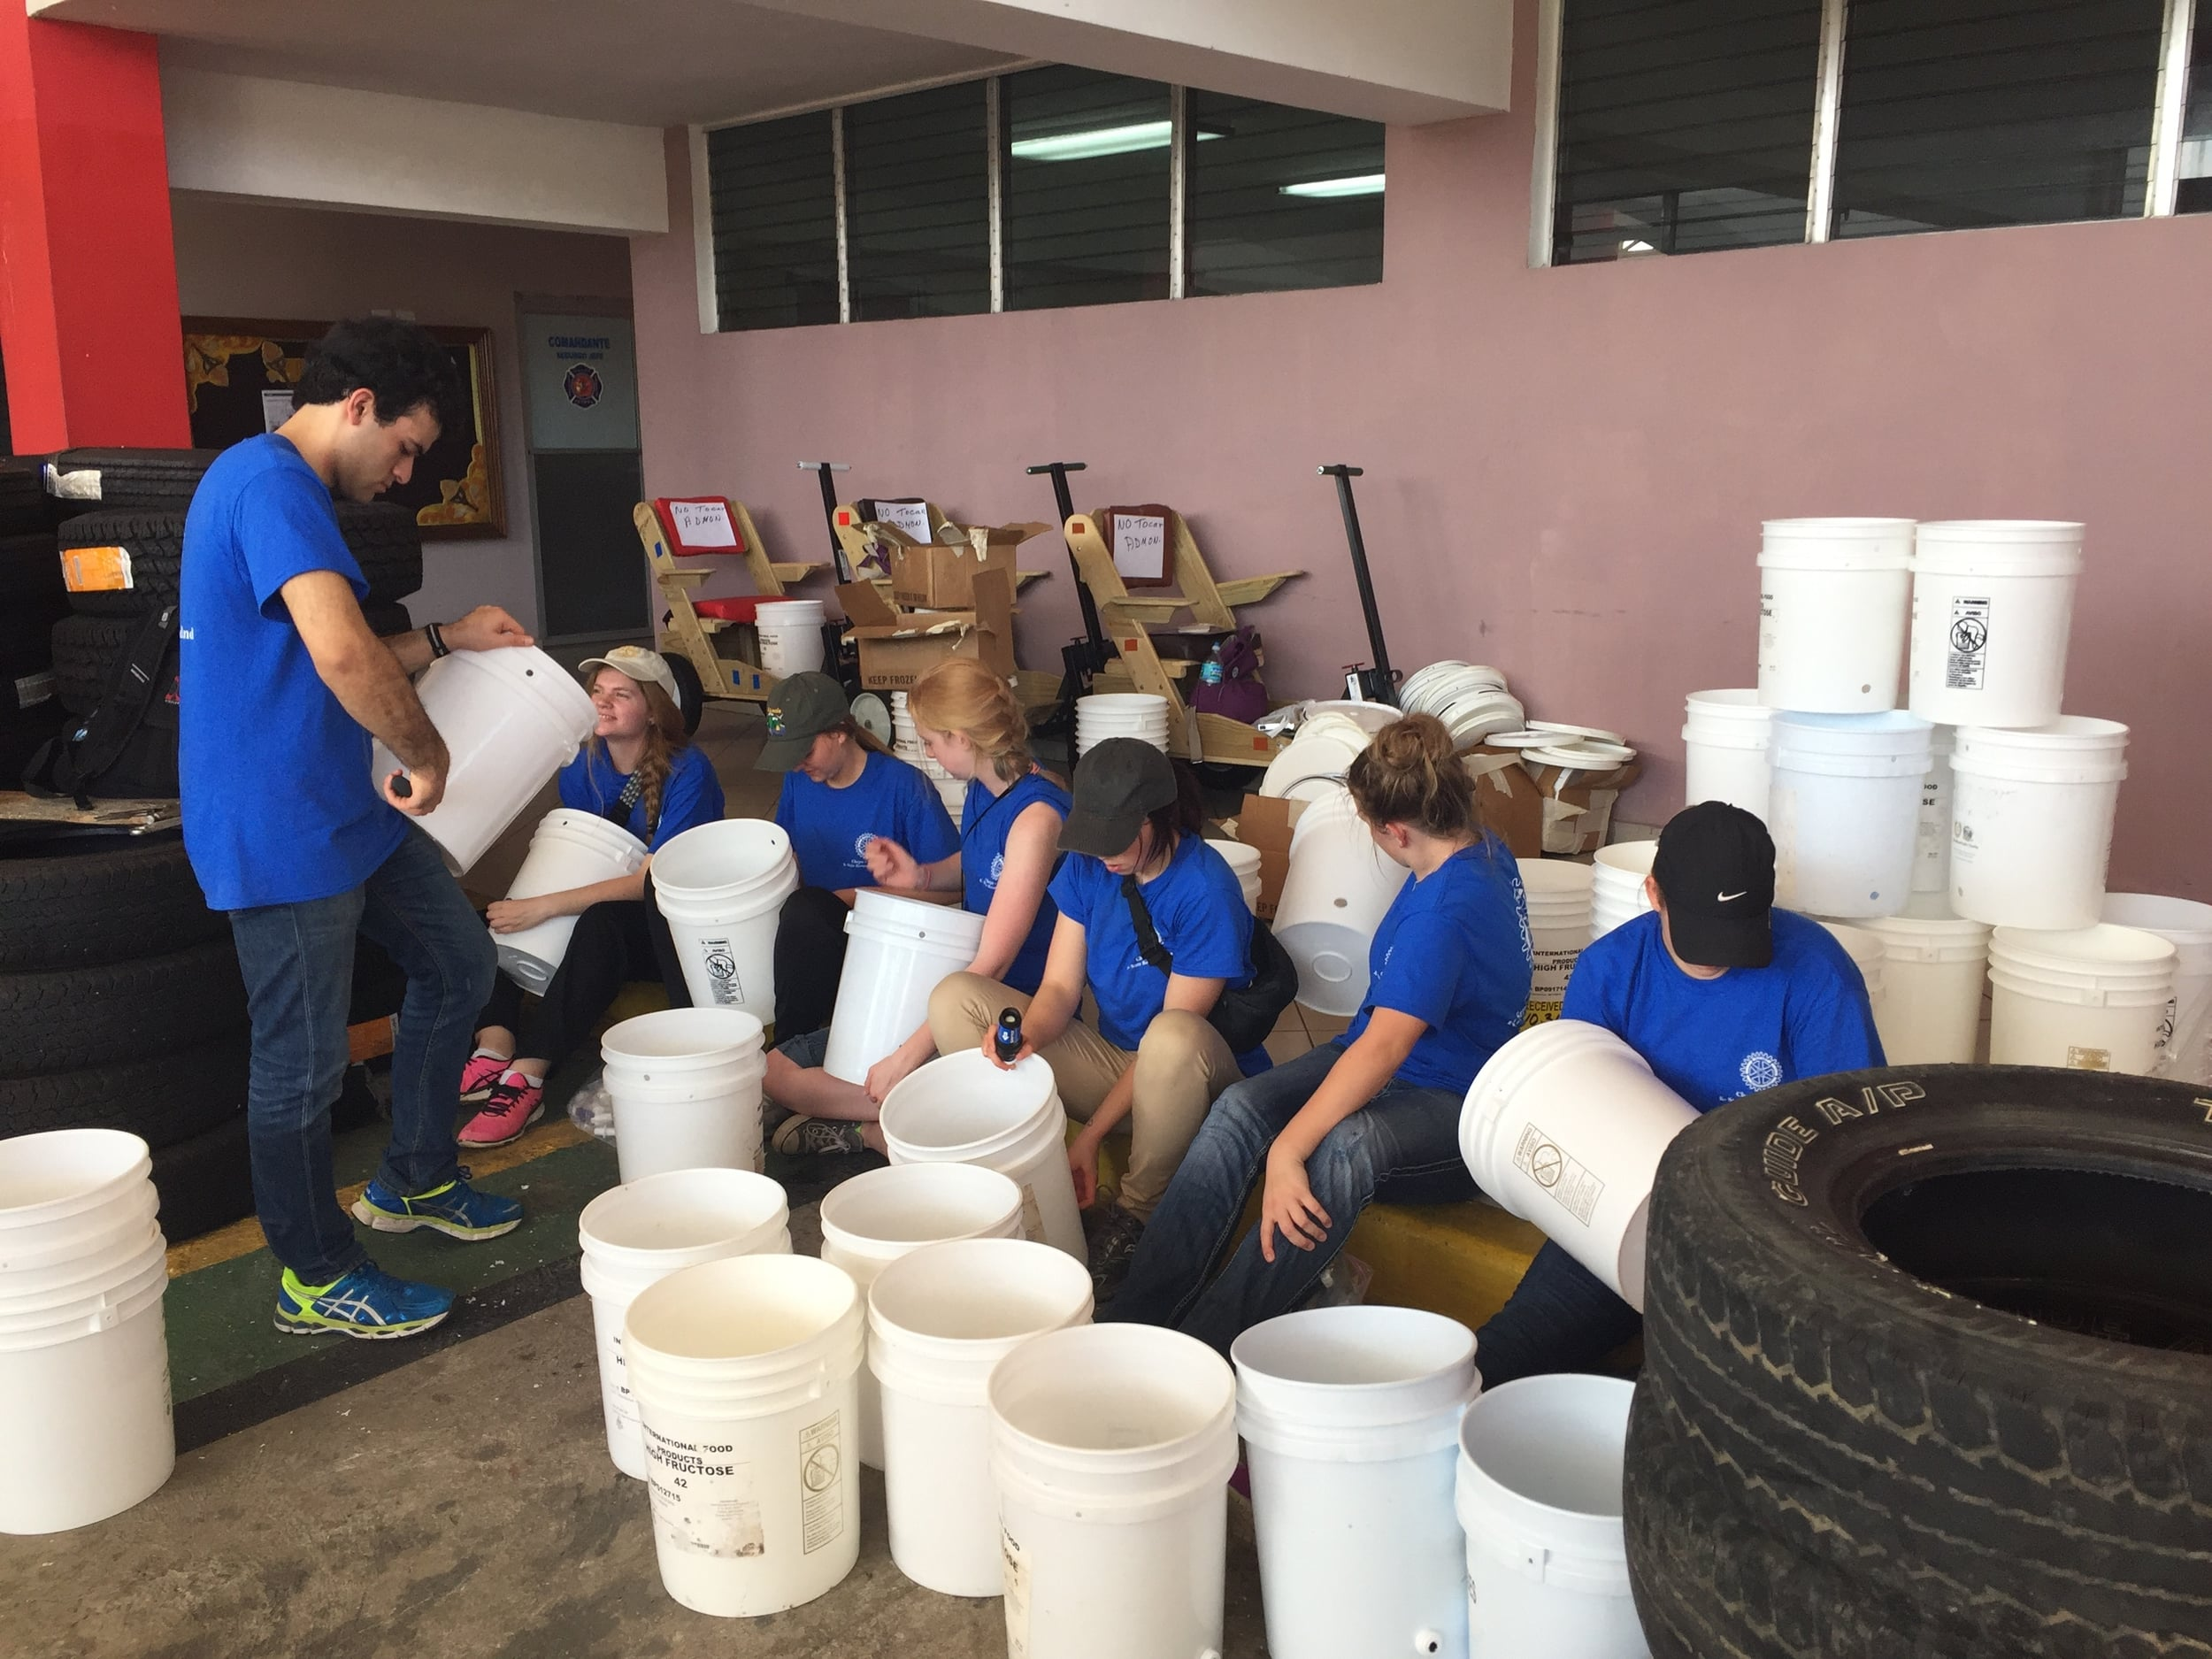 Team assembling water filters to be delivered the next day.